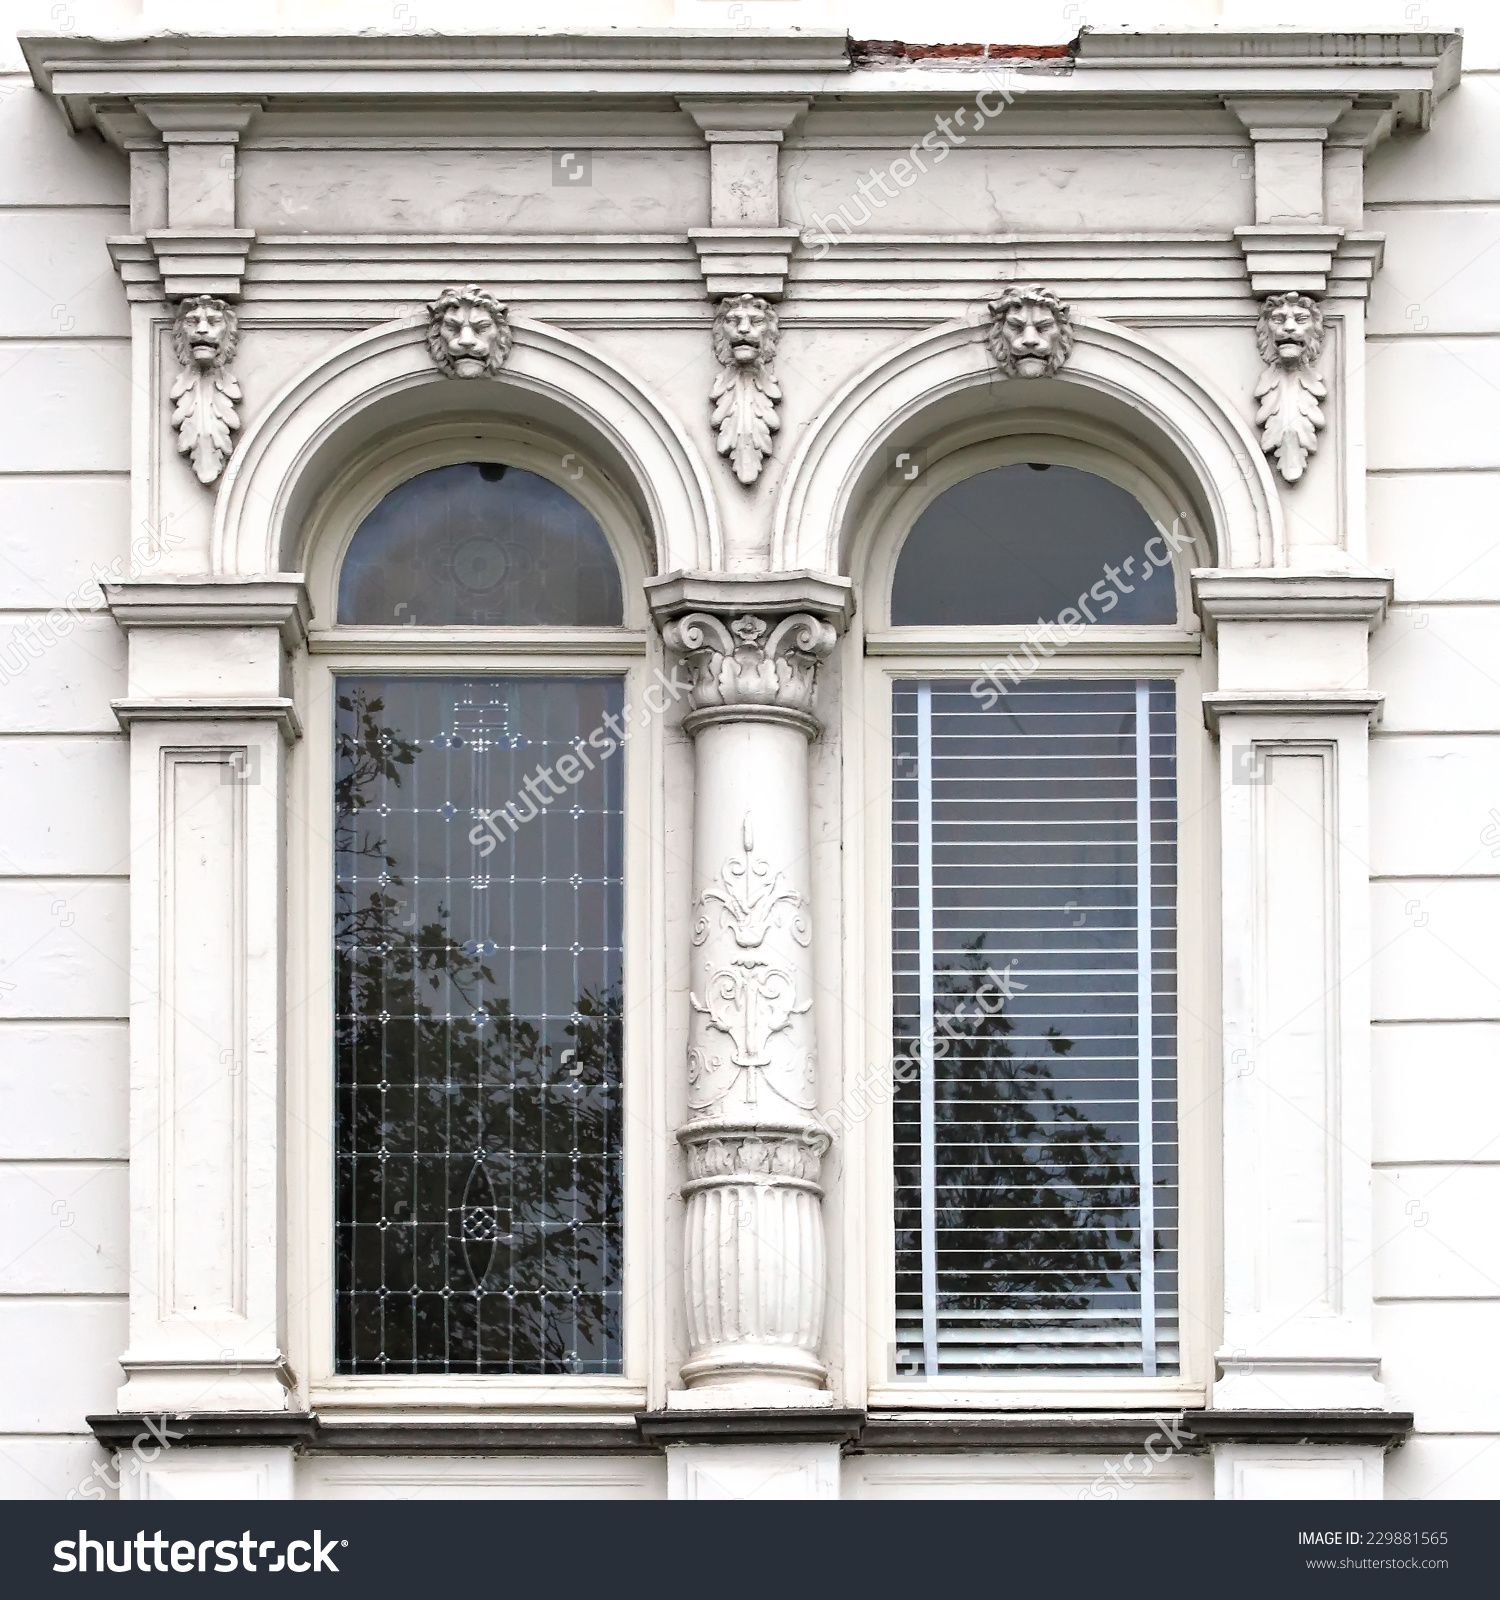 Architecture And Windows Of Ancient Renaissance Style